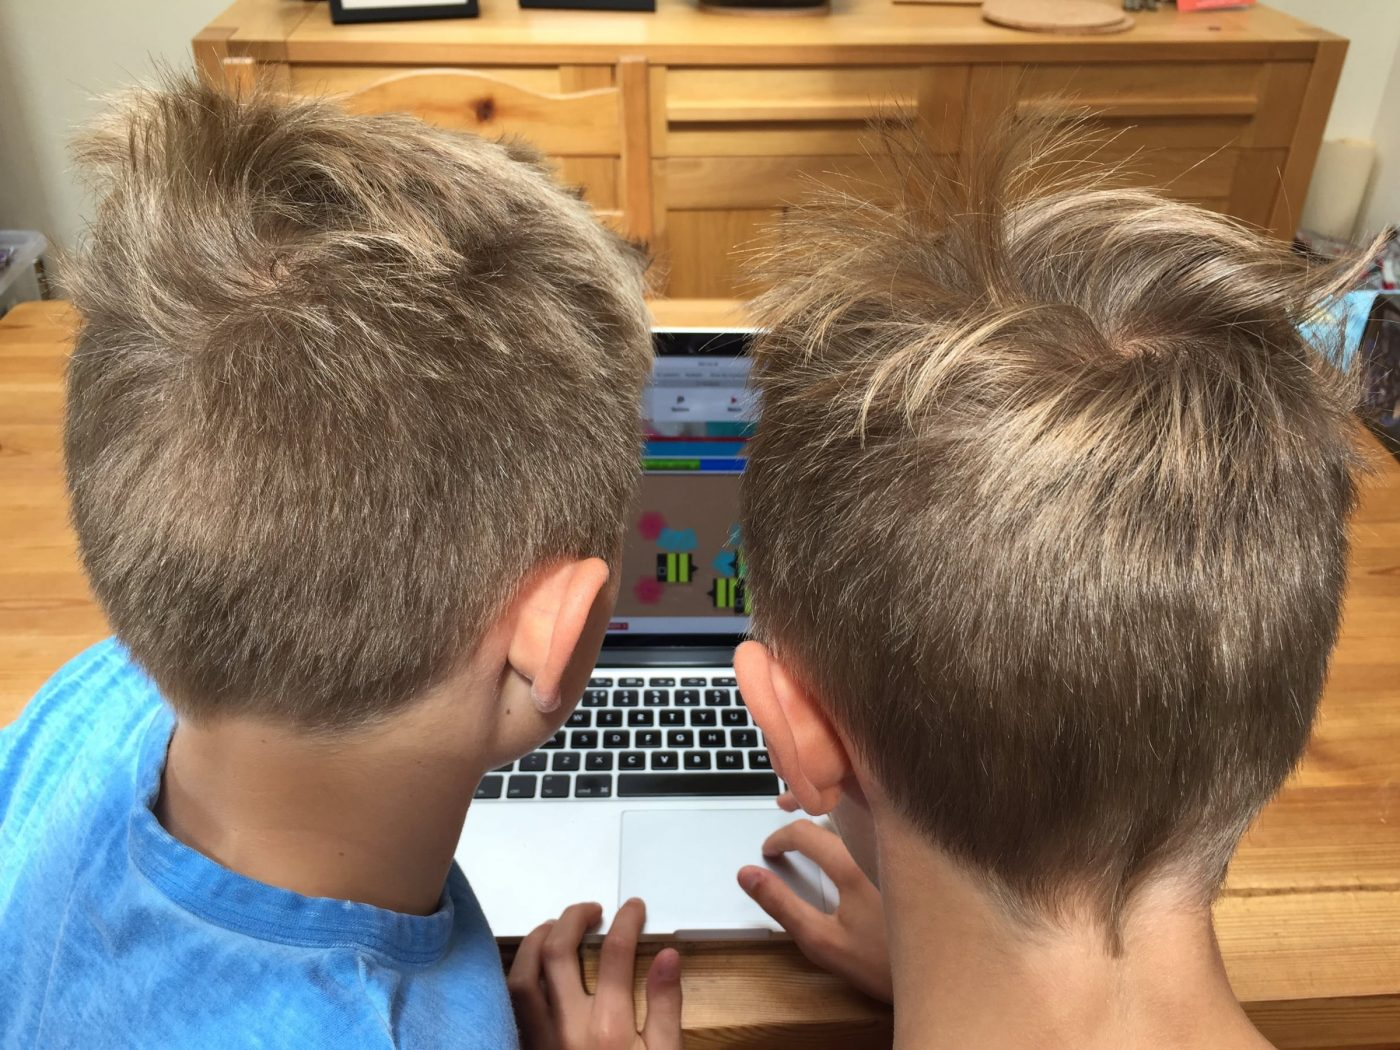 Photo: Two boys use computer